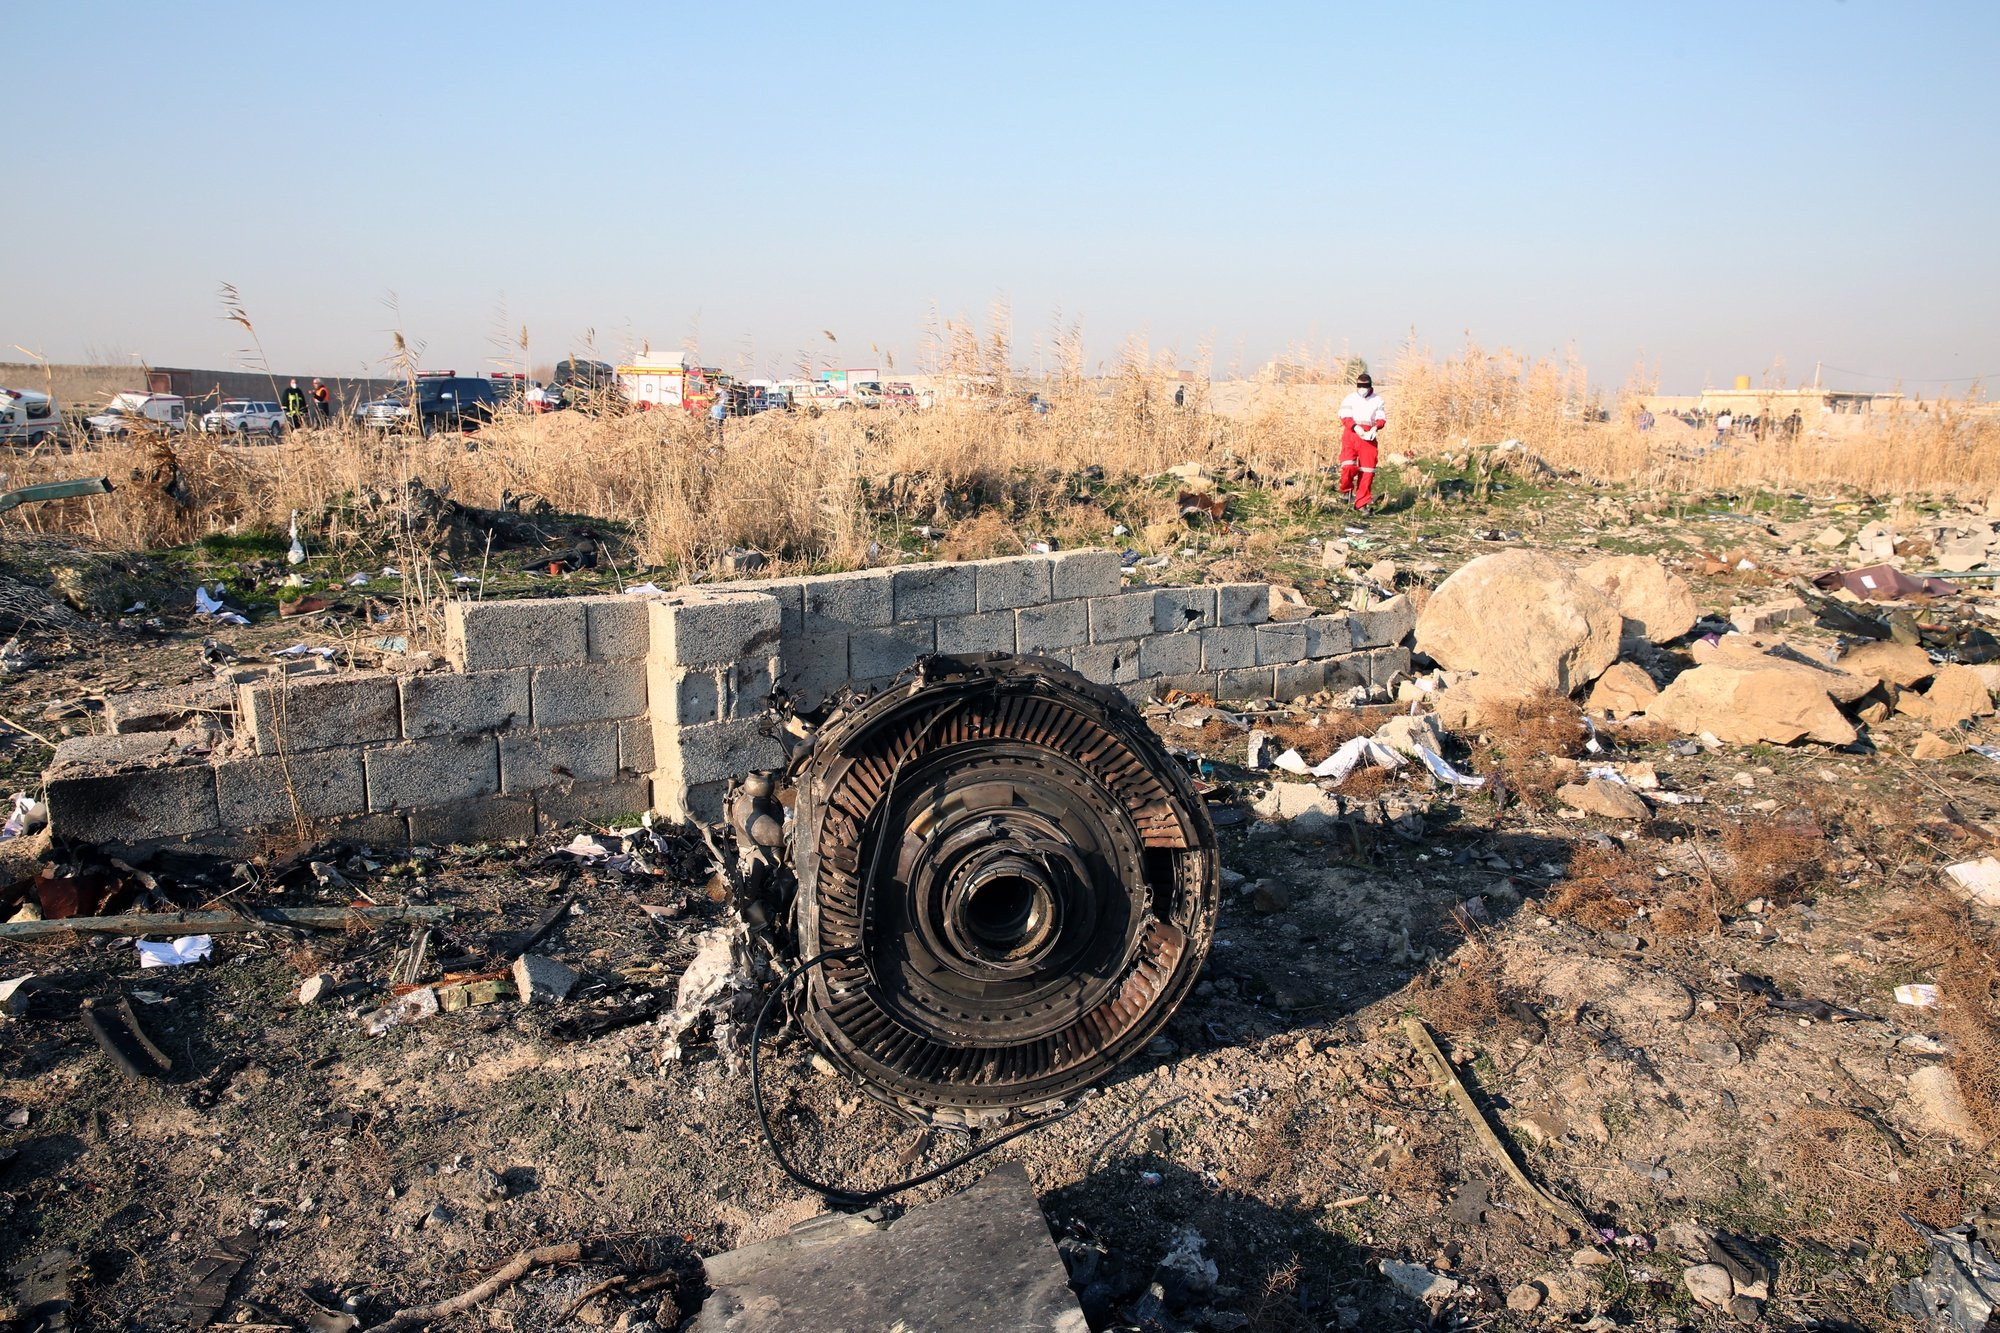 epa08922657 (FILE) - One of the engine of the plane lies among the wreckage after an Ukraine International Airlines Boeing 737-800 carrying 176 people crashed near Imam Khomeini Airport in Tehran, killing everyone on board, in Shahriar, Iran, 08 January 2020 (reissued 06 January 2021). A Ukrainian International Airlines passenger plane was downed by Iranian armed forces on 08 January 2020 near Tehran, killing all 176 people aboard, after allegedly mistaking it for an incoming missile.  EPA/ABEDIN TAHERKENAREH *** Local Caption *** 55751015